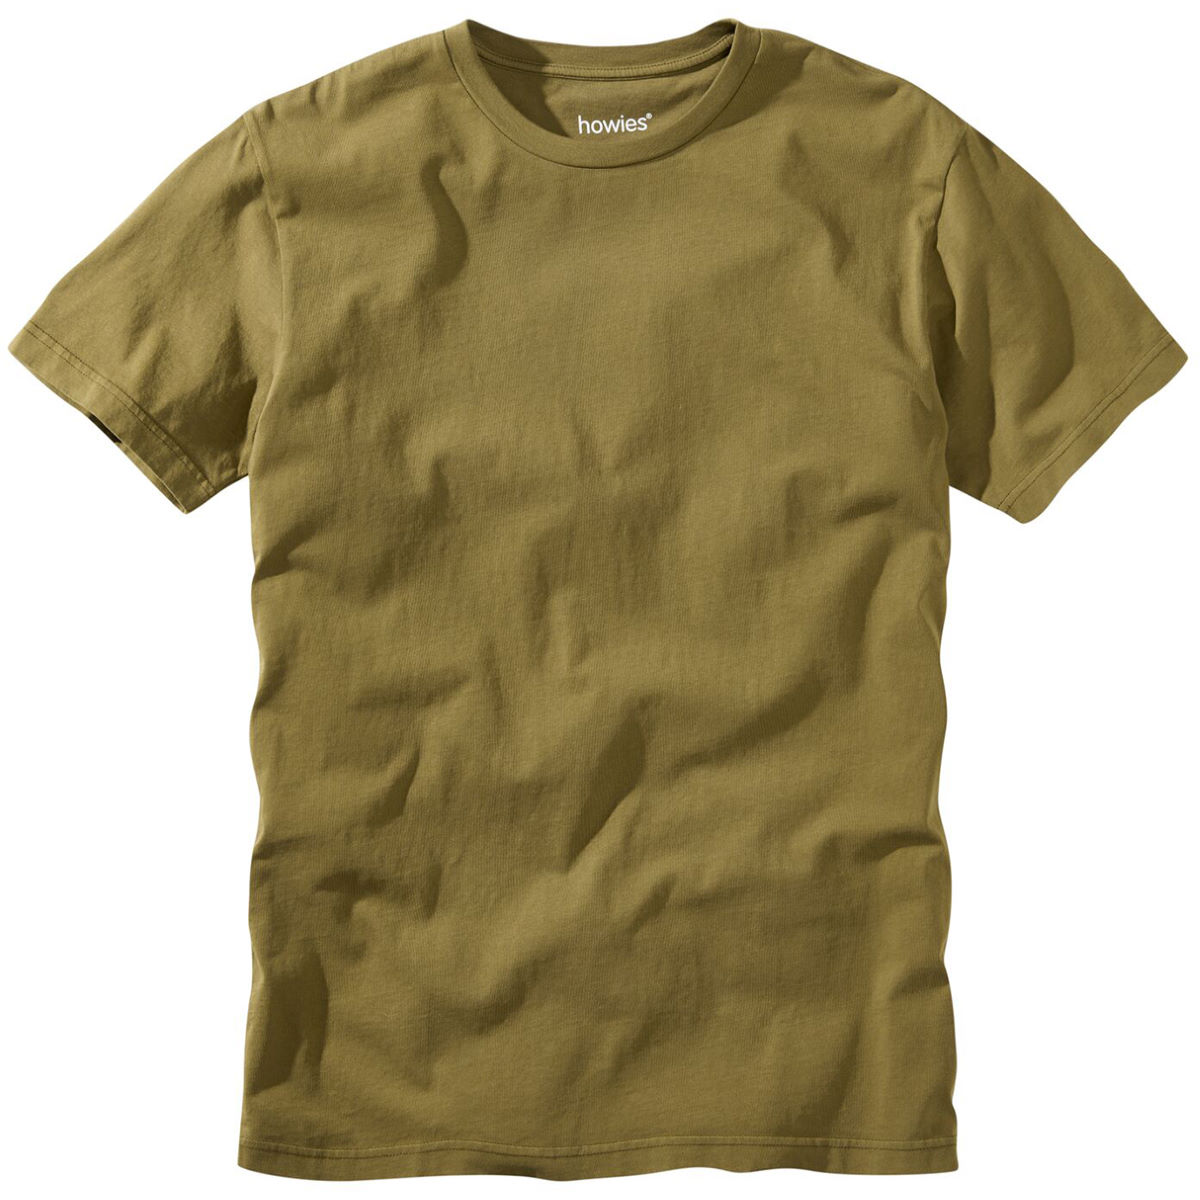 Howies Mr T T Shirt - Xxl Military Olive  T-shirts